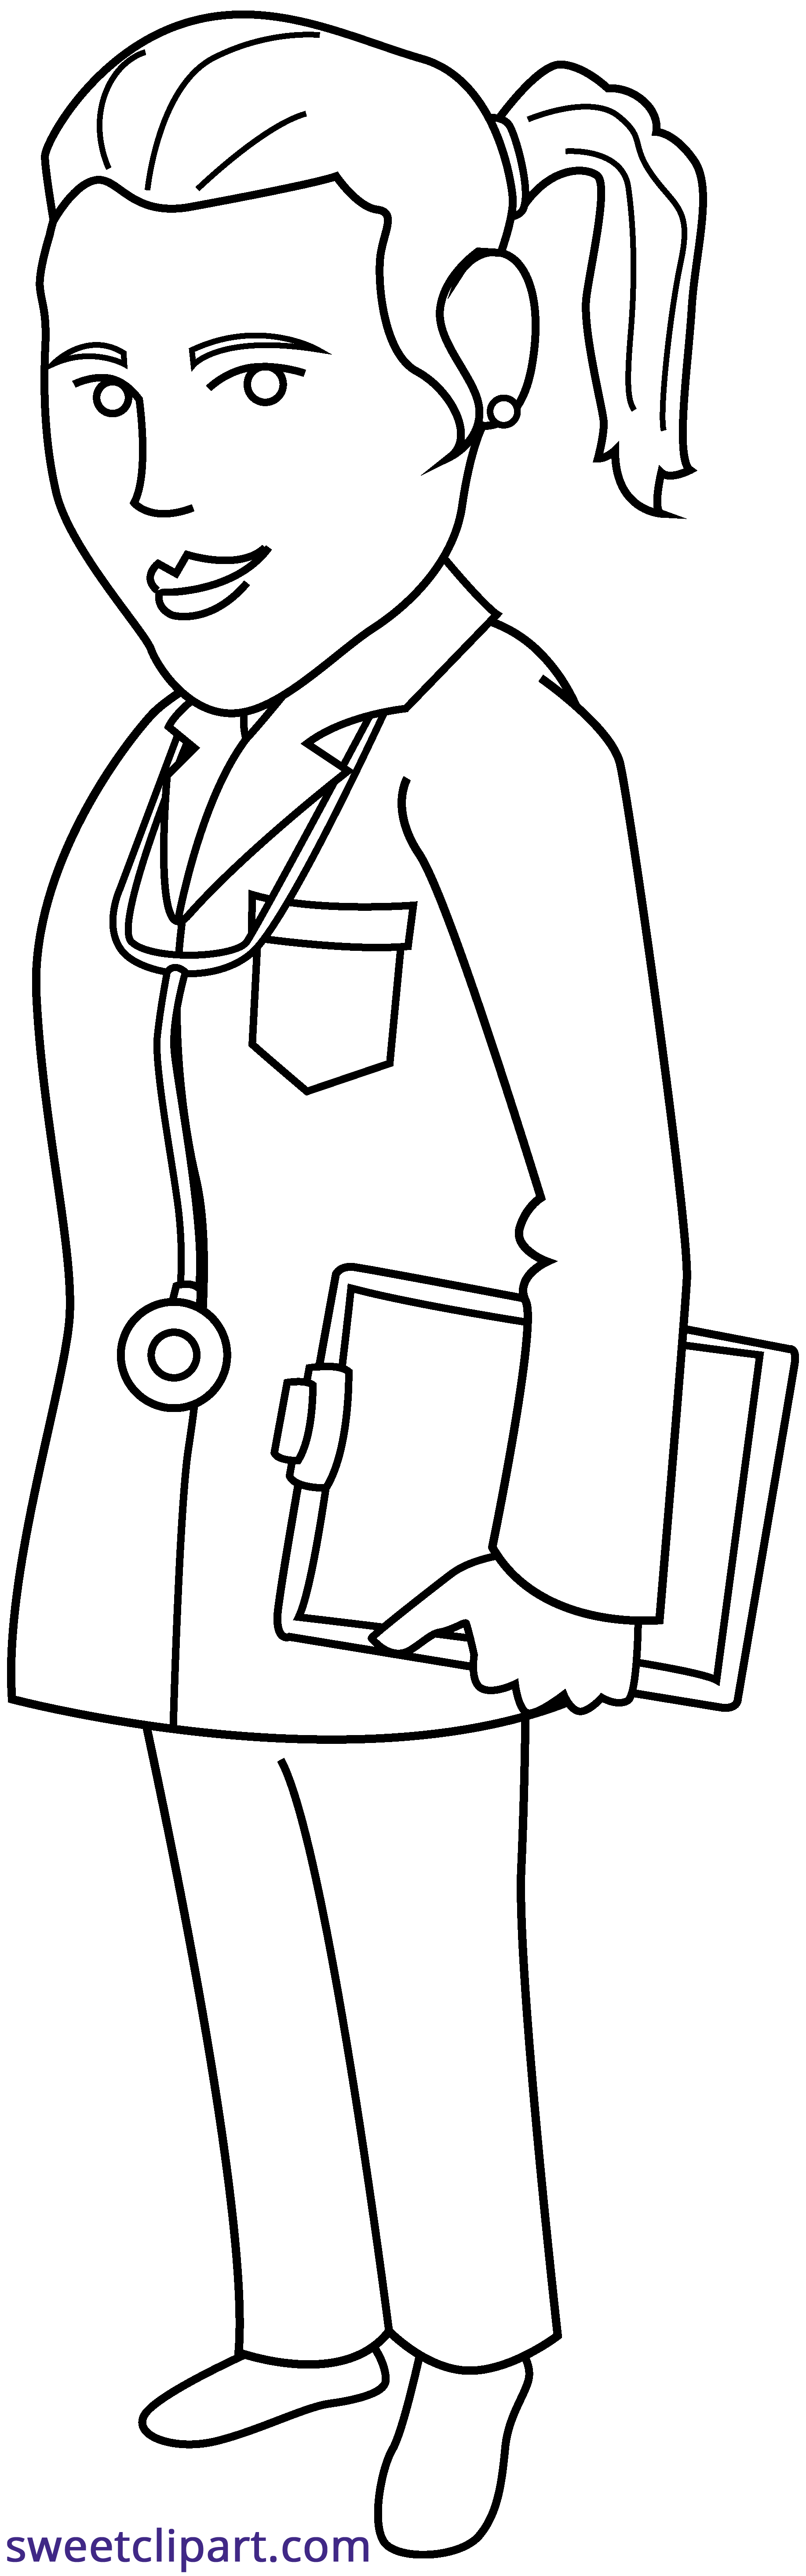 Book doctor clipart clip art royalty free library Doctor Line Art Clipart - Sweet Clip Art clip art royalty free library